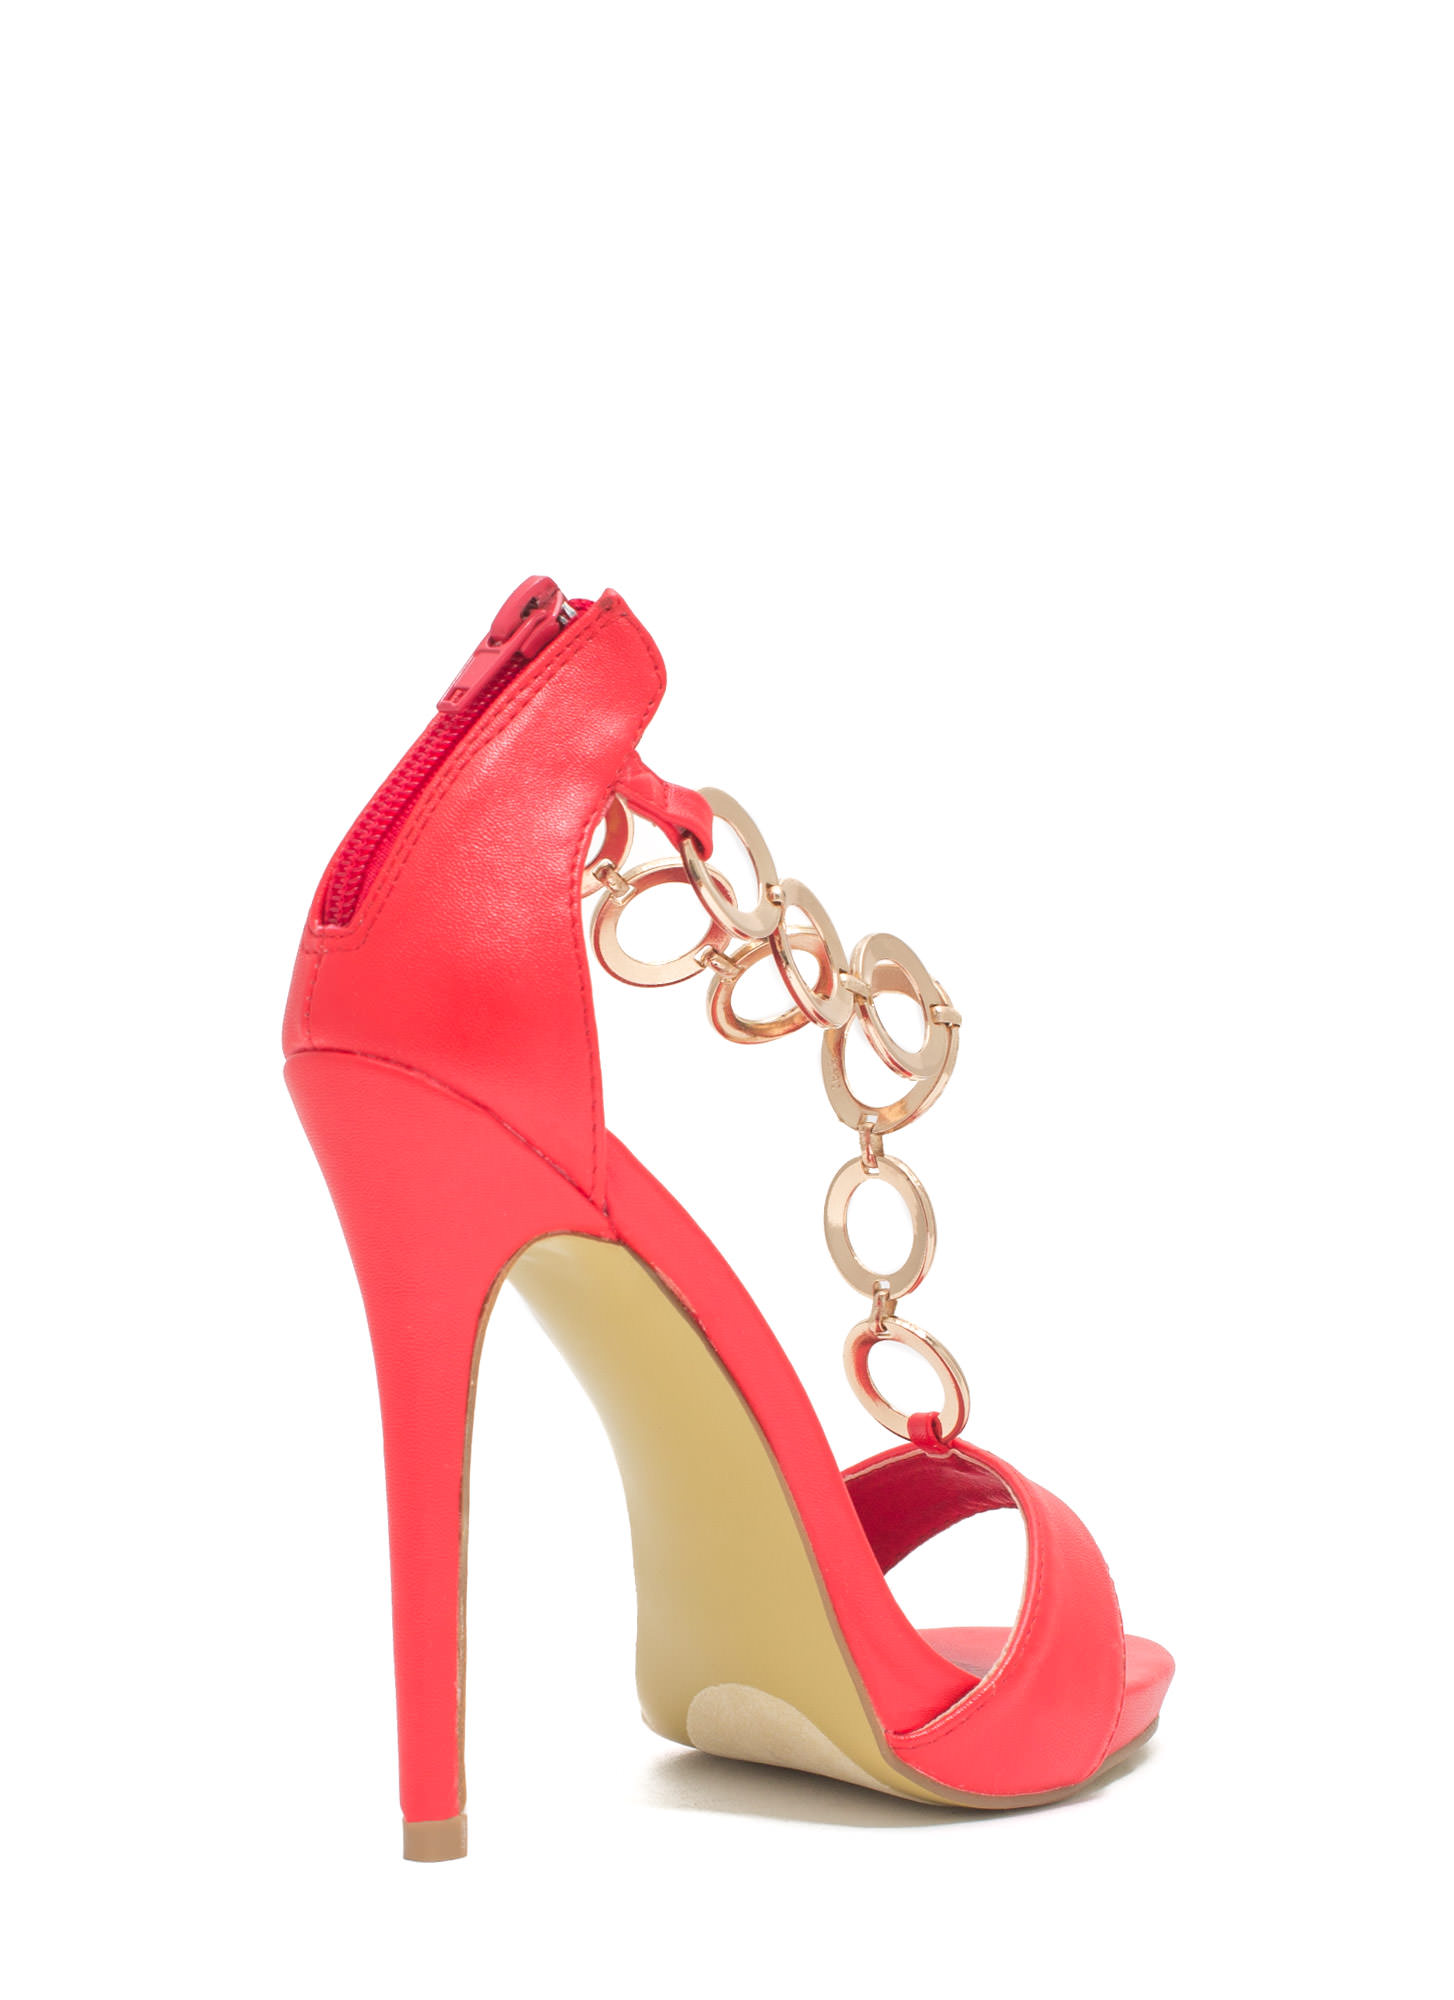 Around The Ring Faux Leather Heels RED (Final Sale)